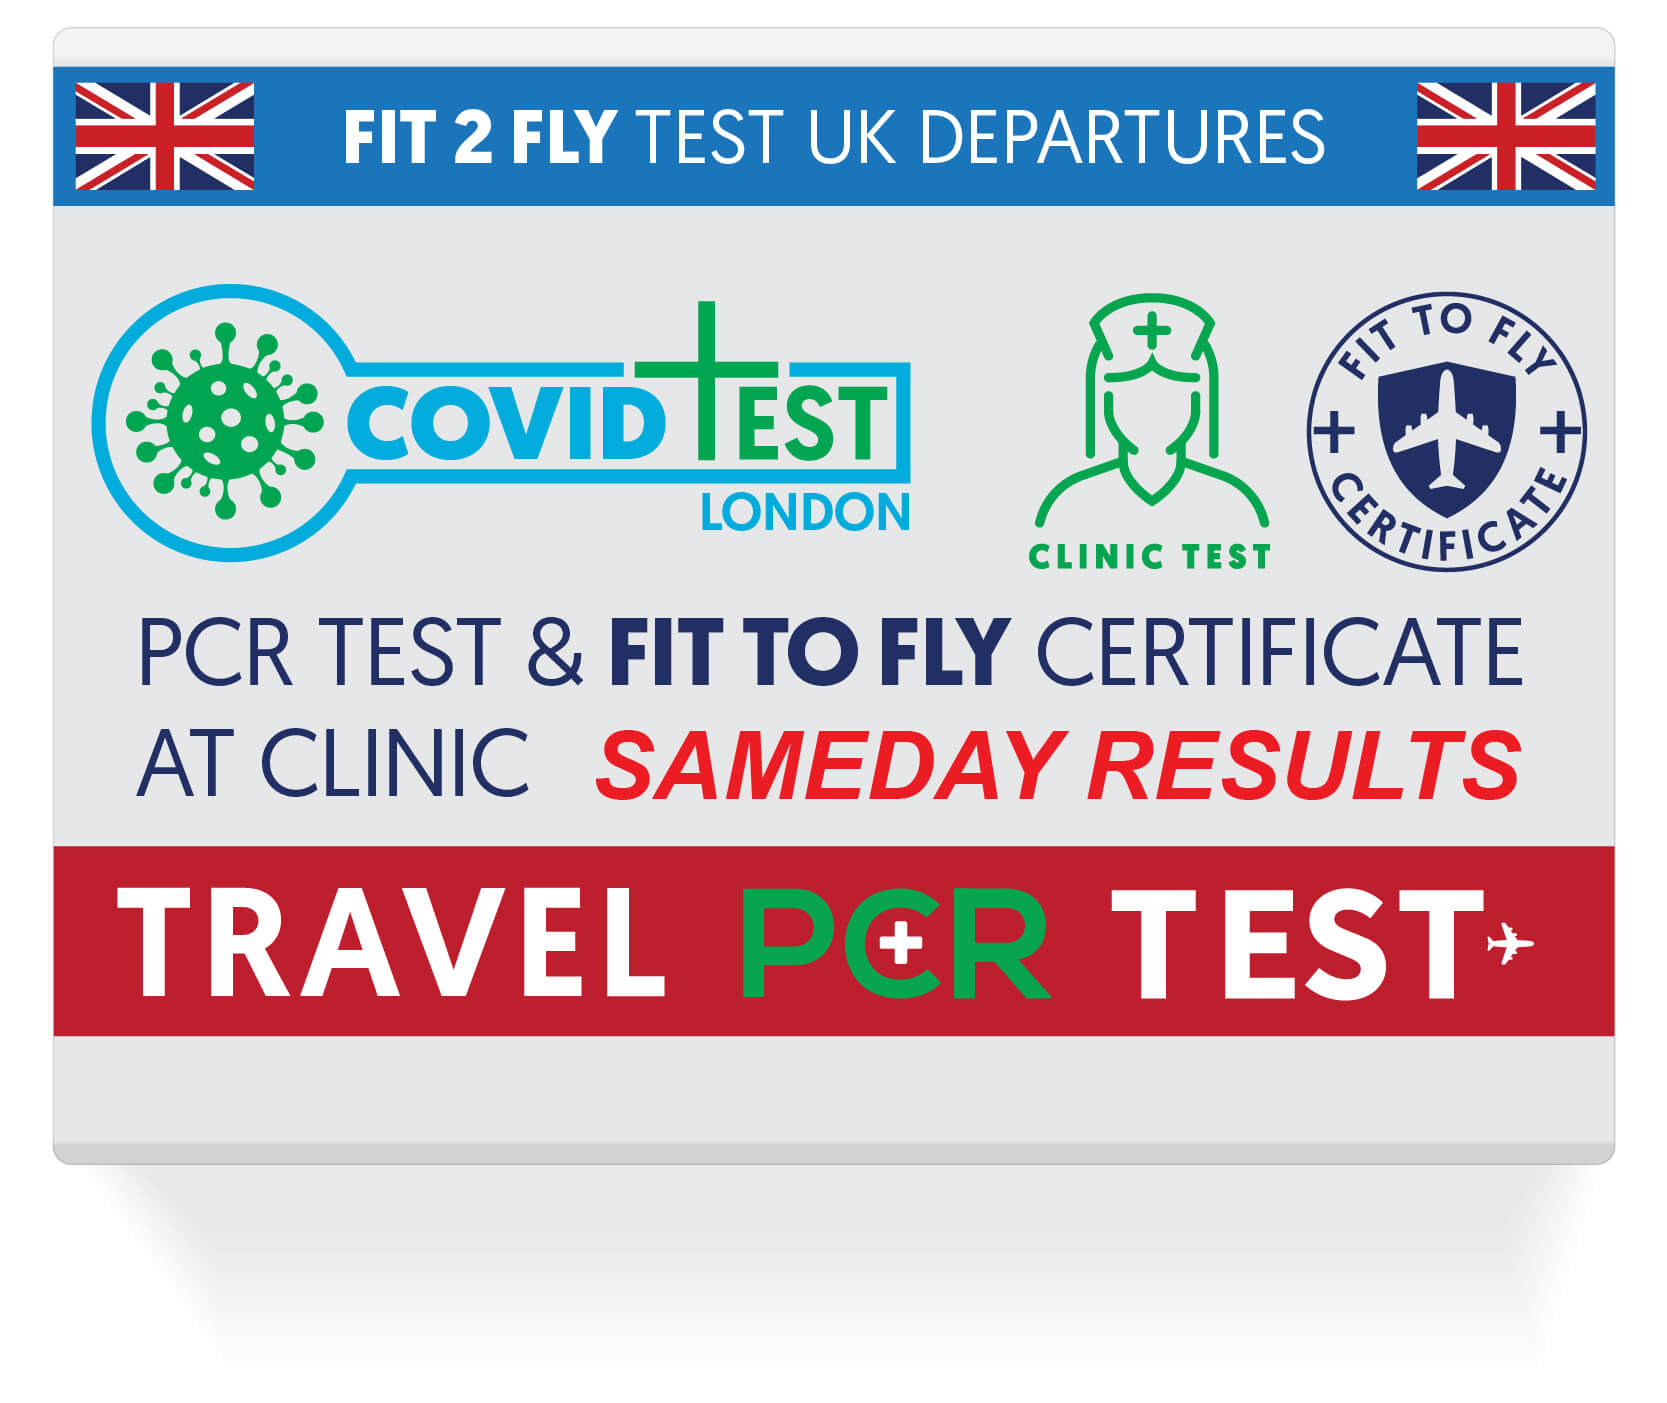 covid-test-london-_fit-to-fly-clinic-same-day-results